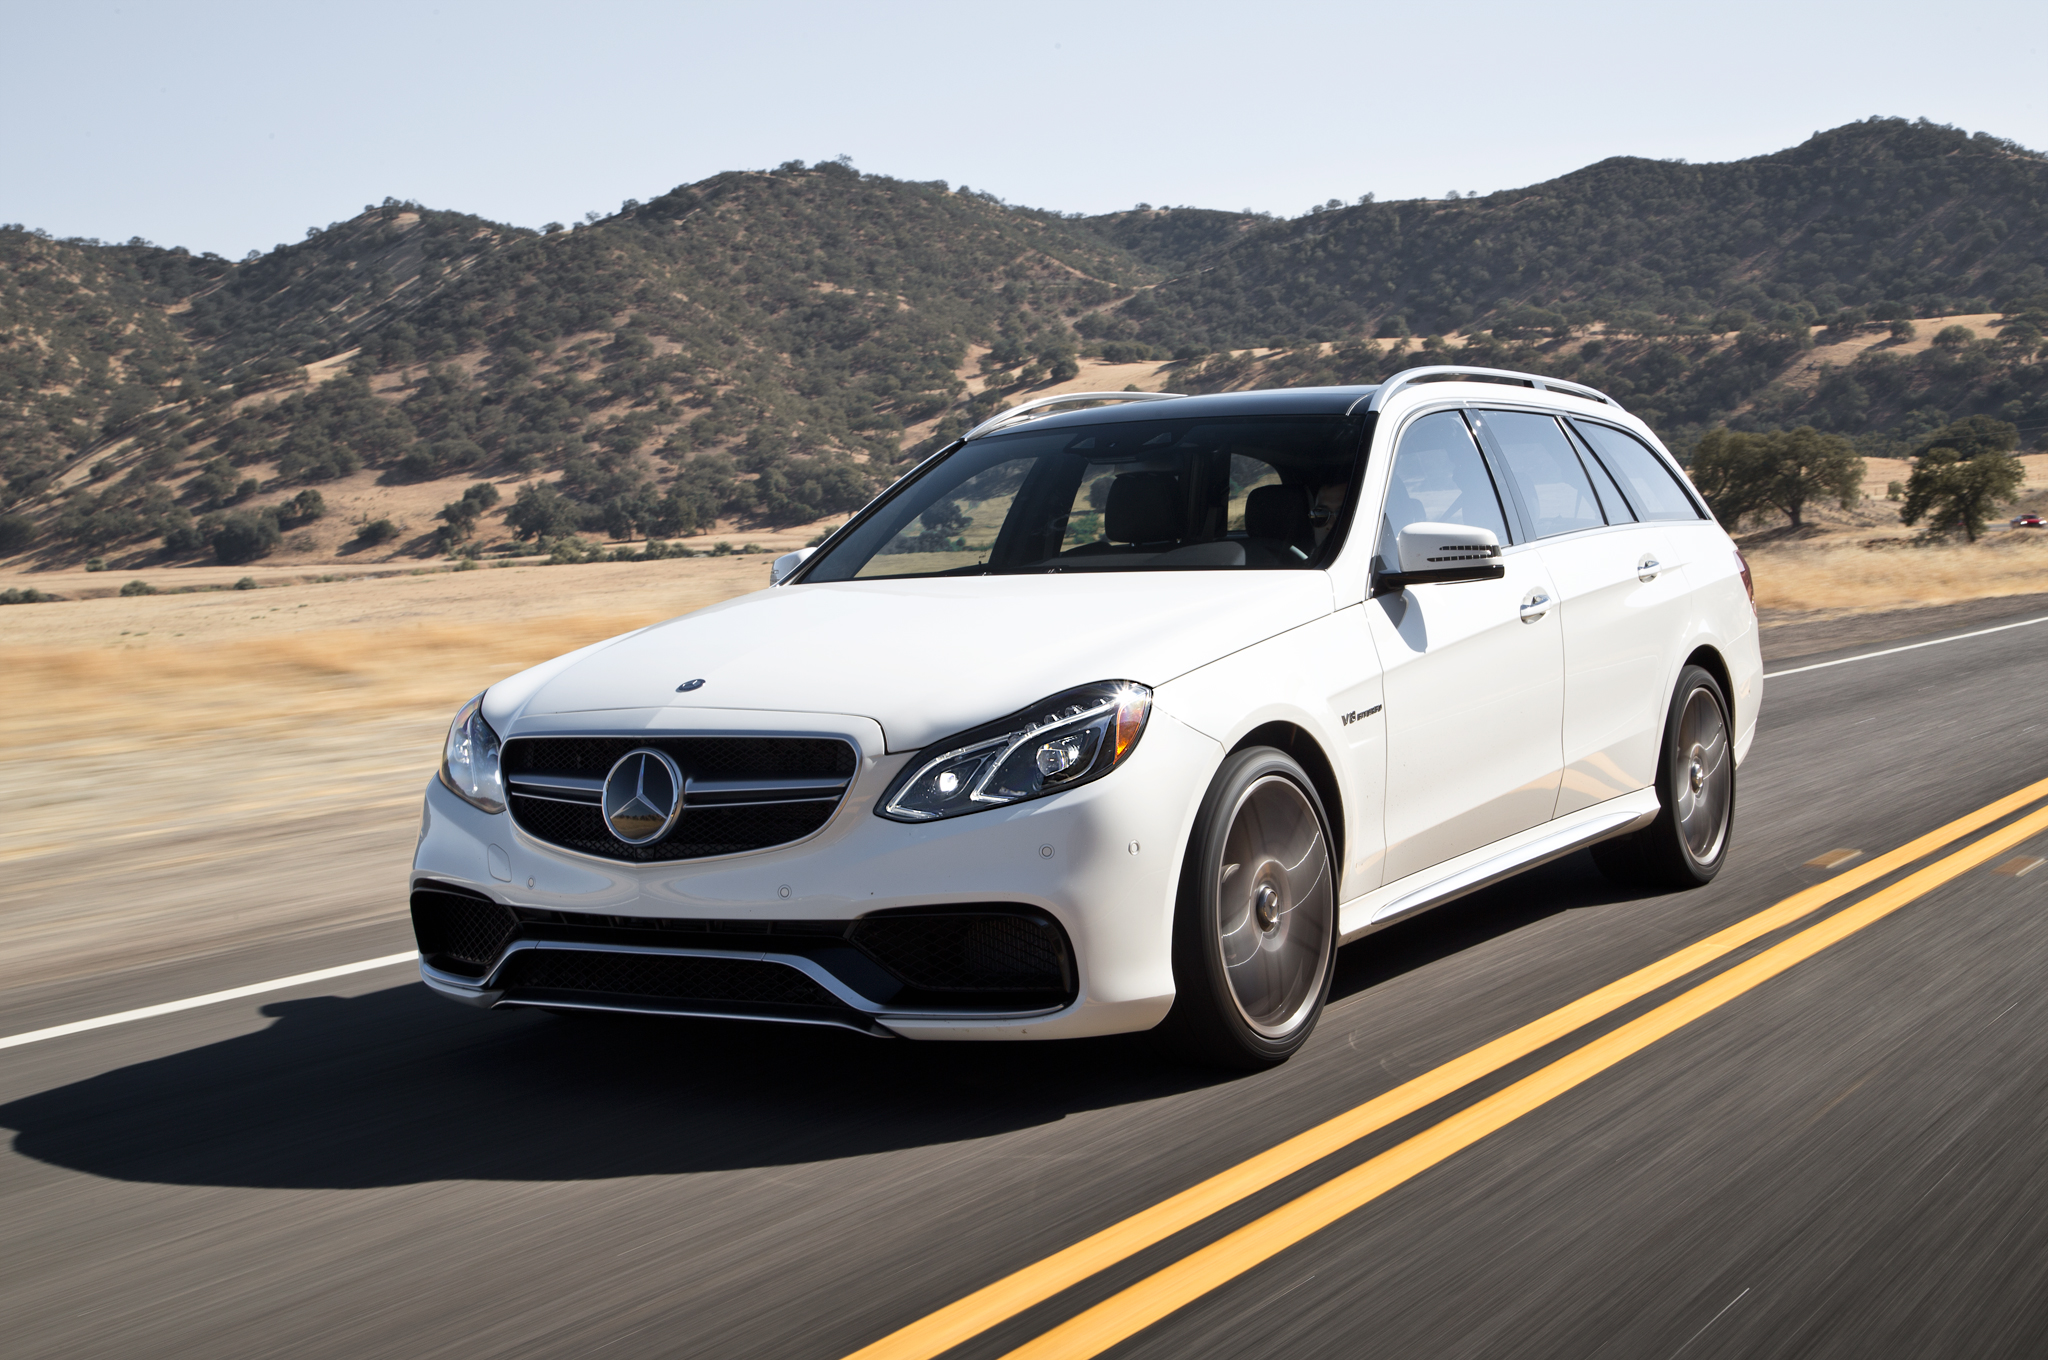 2014 Mercedes Benz E63 AMG S Model 4Matic Wagon First Test